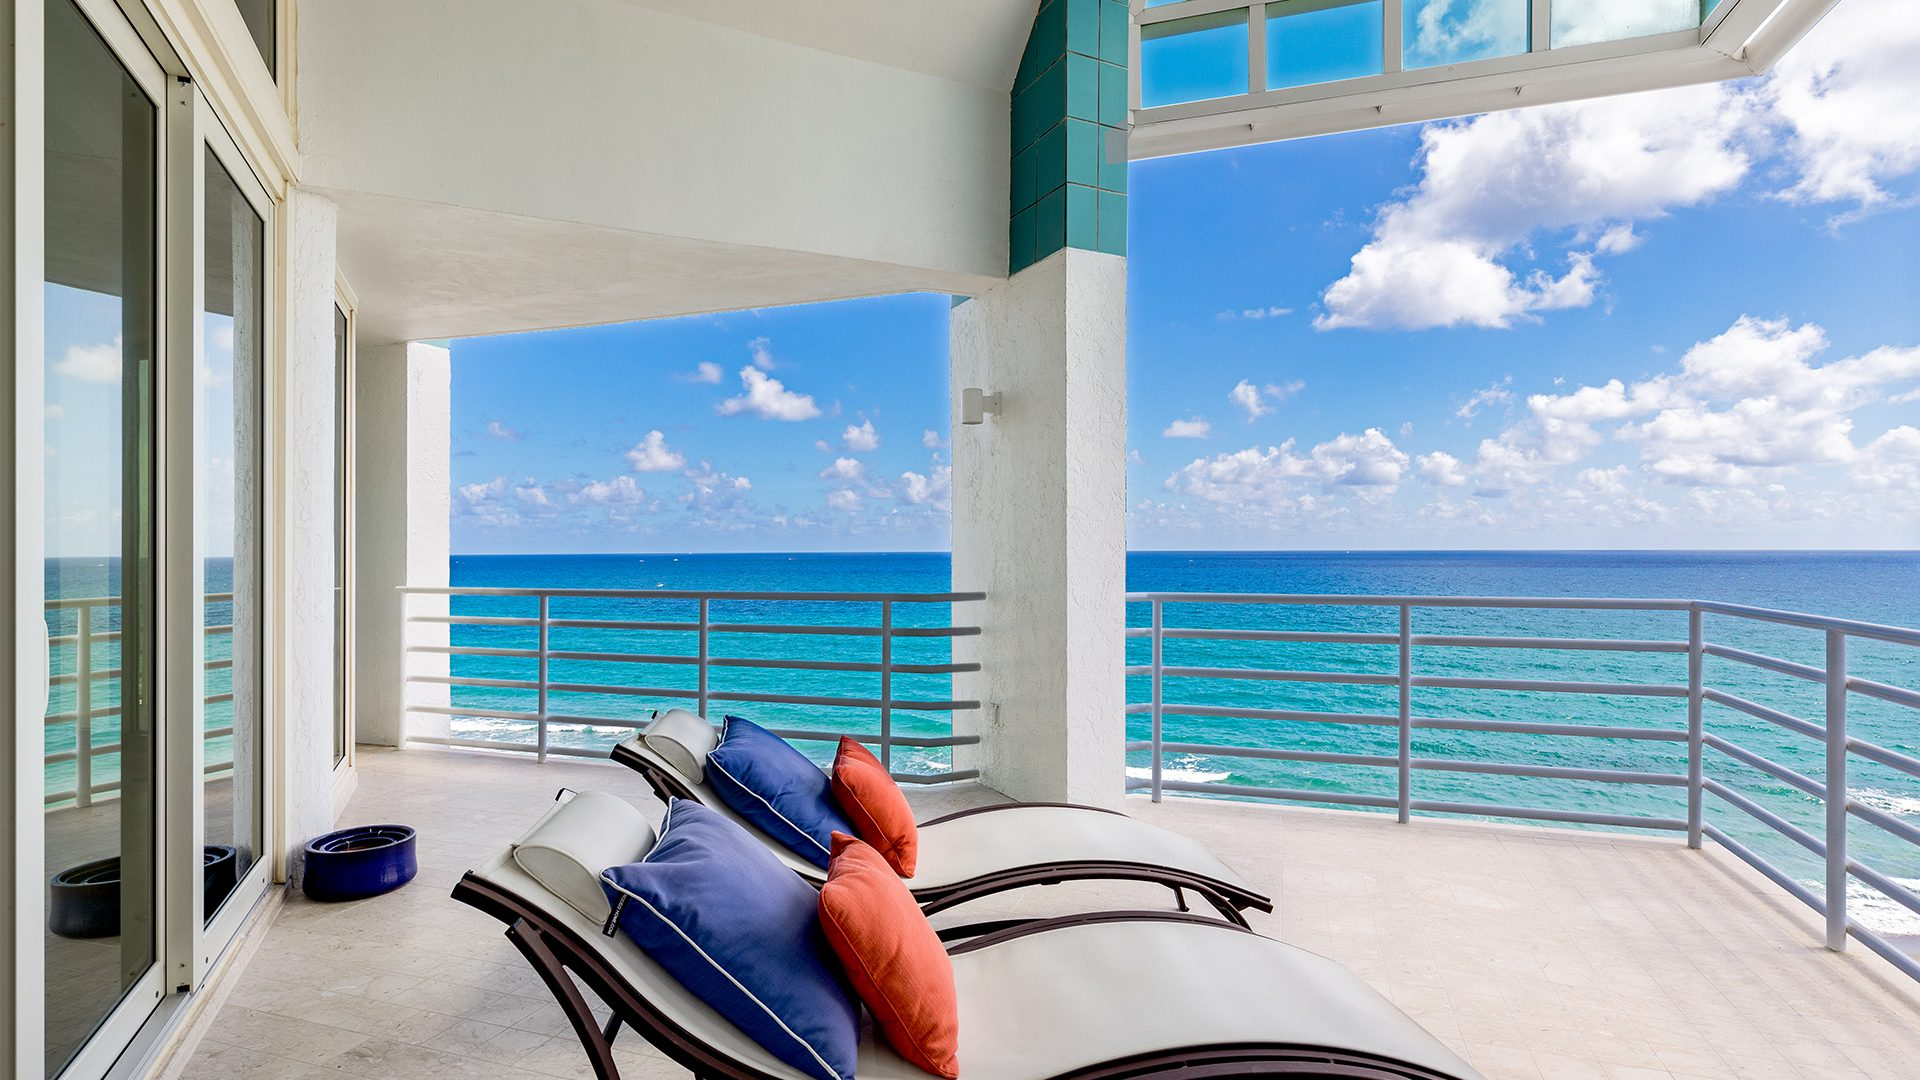 Penthouse 6 For Sale at Presidential Place, Boca Raton Florida 33432